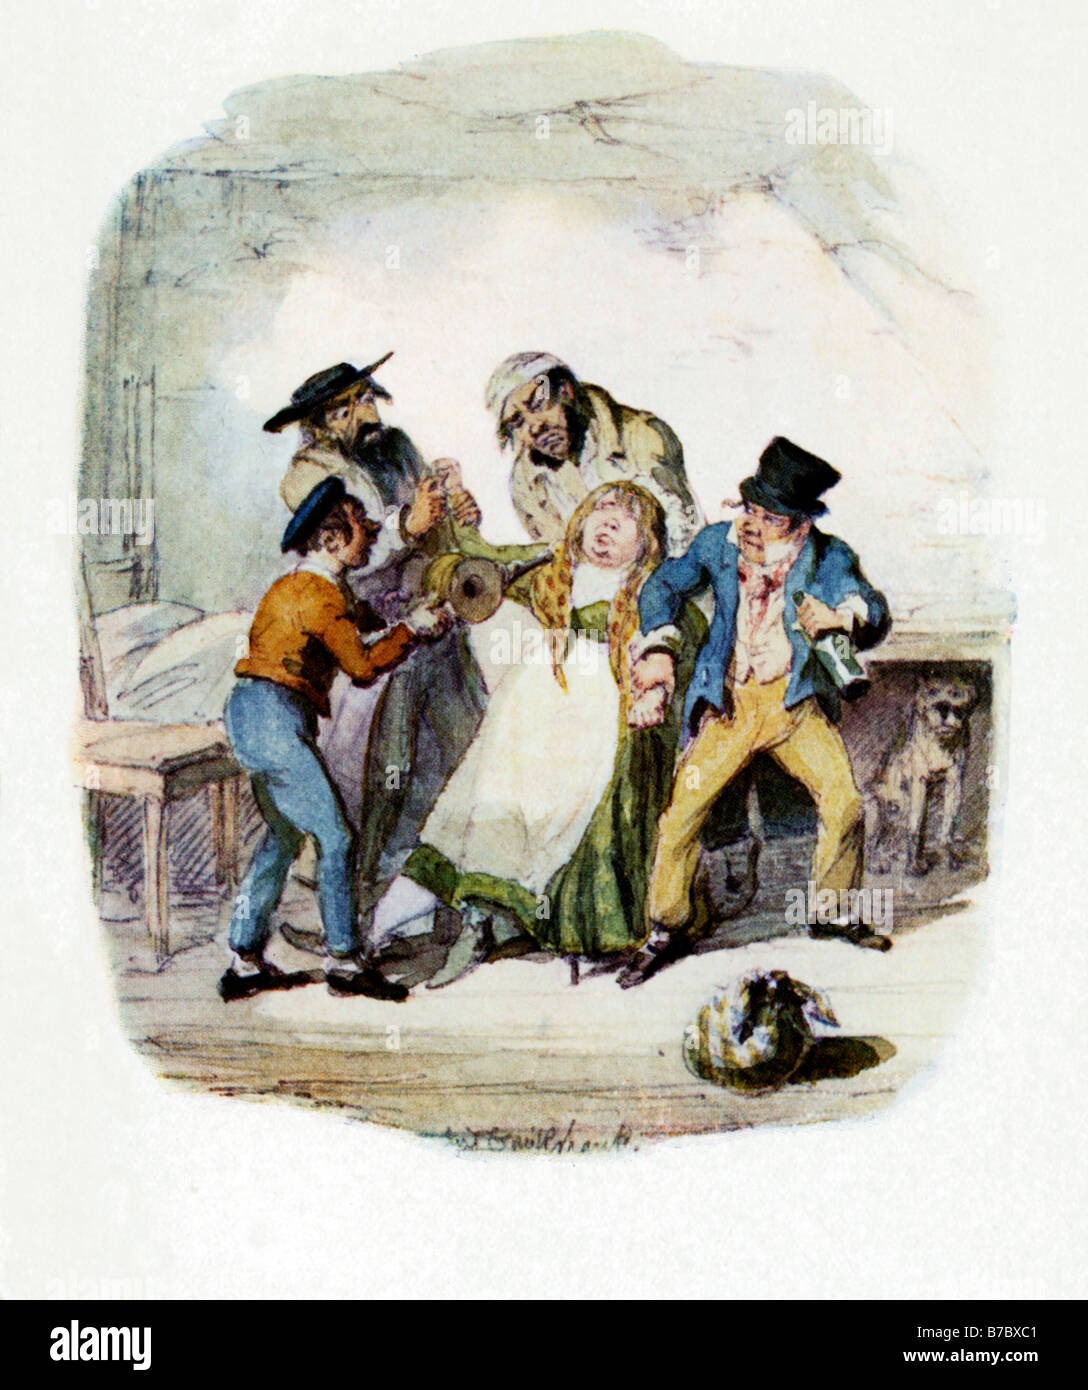 fagin oliver twist stock photos fagin oliver twist stock images oliver twist fagin and his boys recovering nancy original illustration by george cruikshank for the dickens